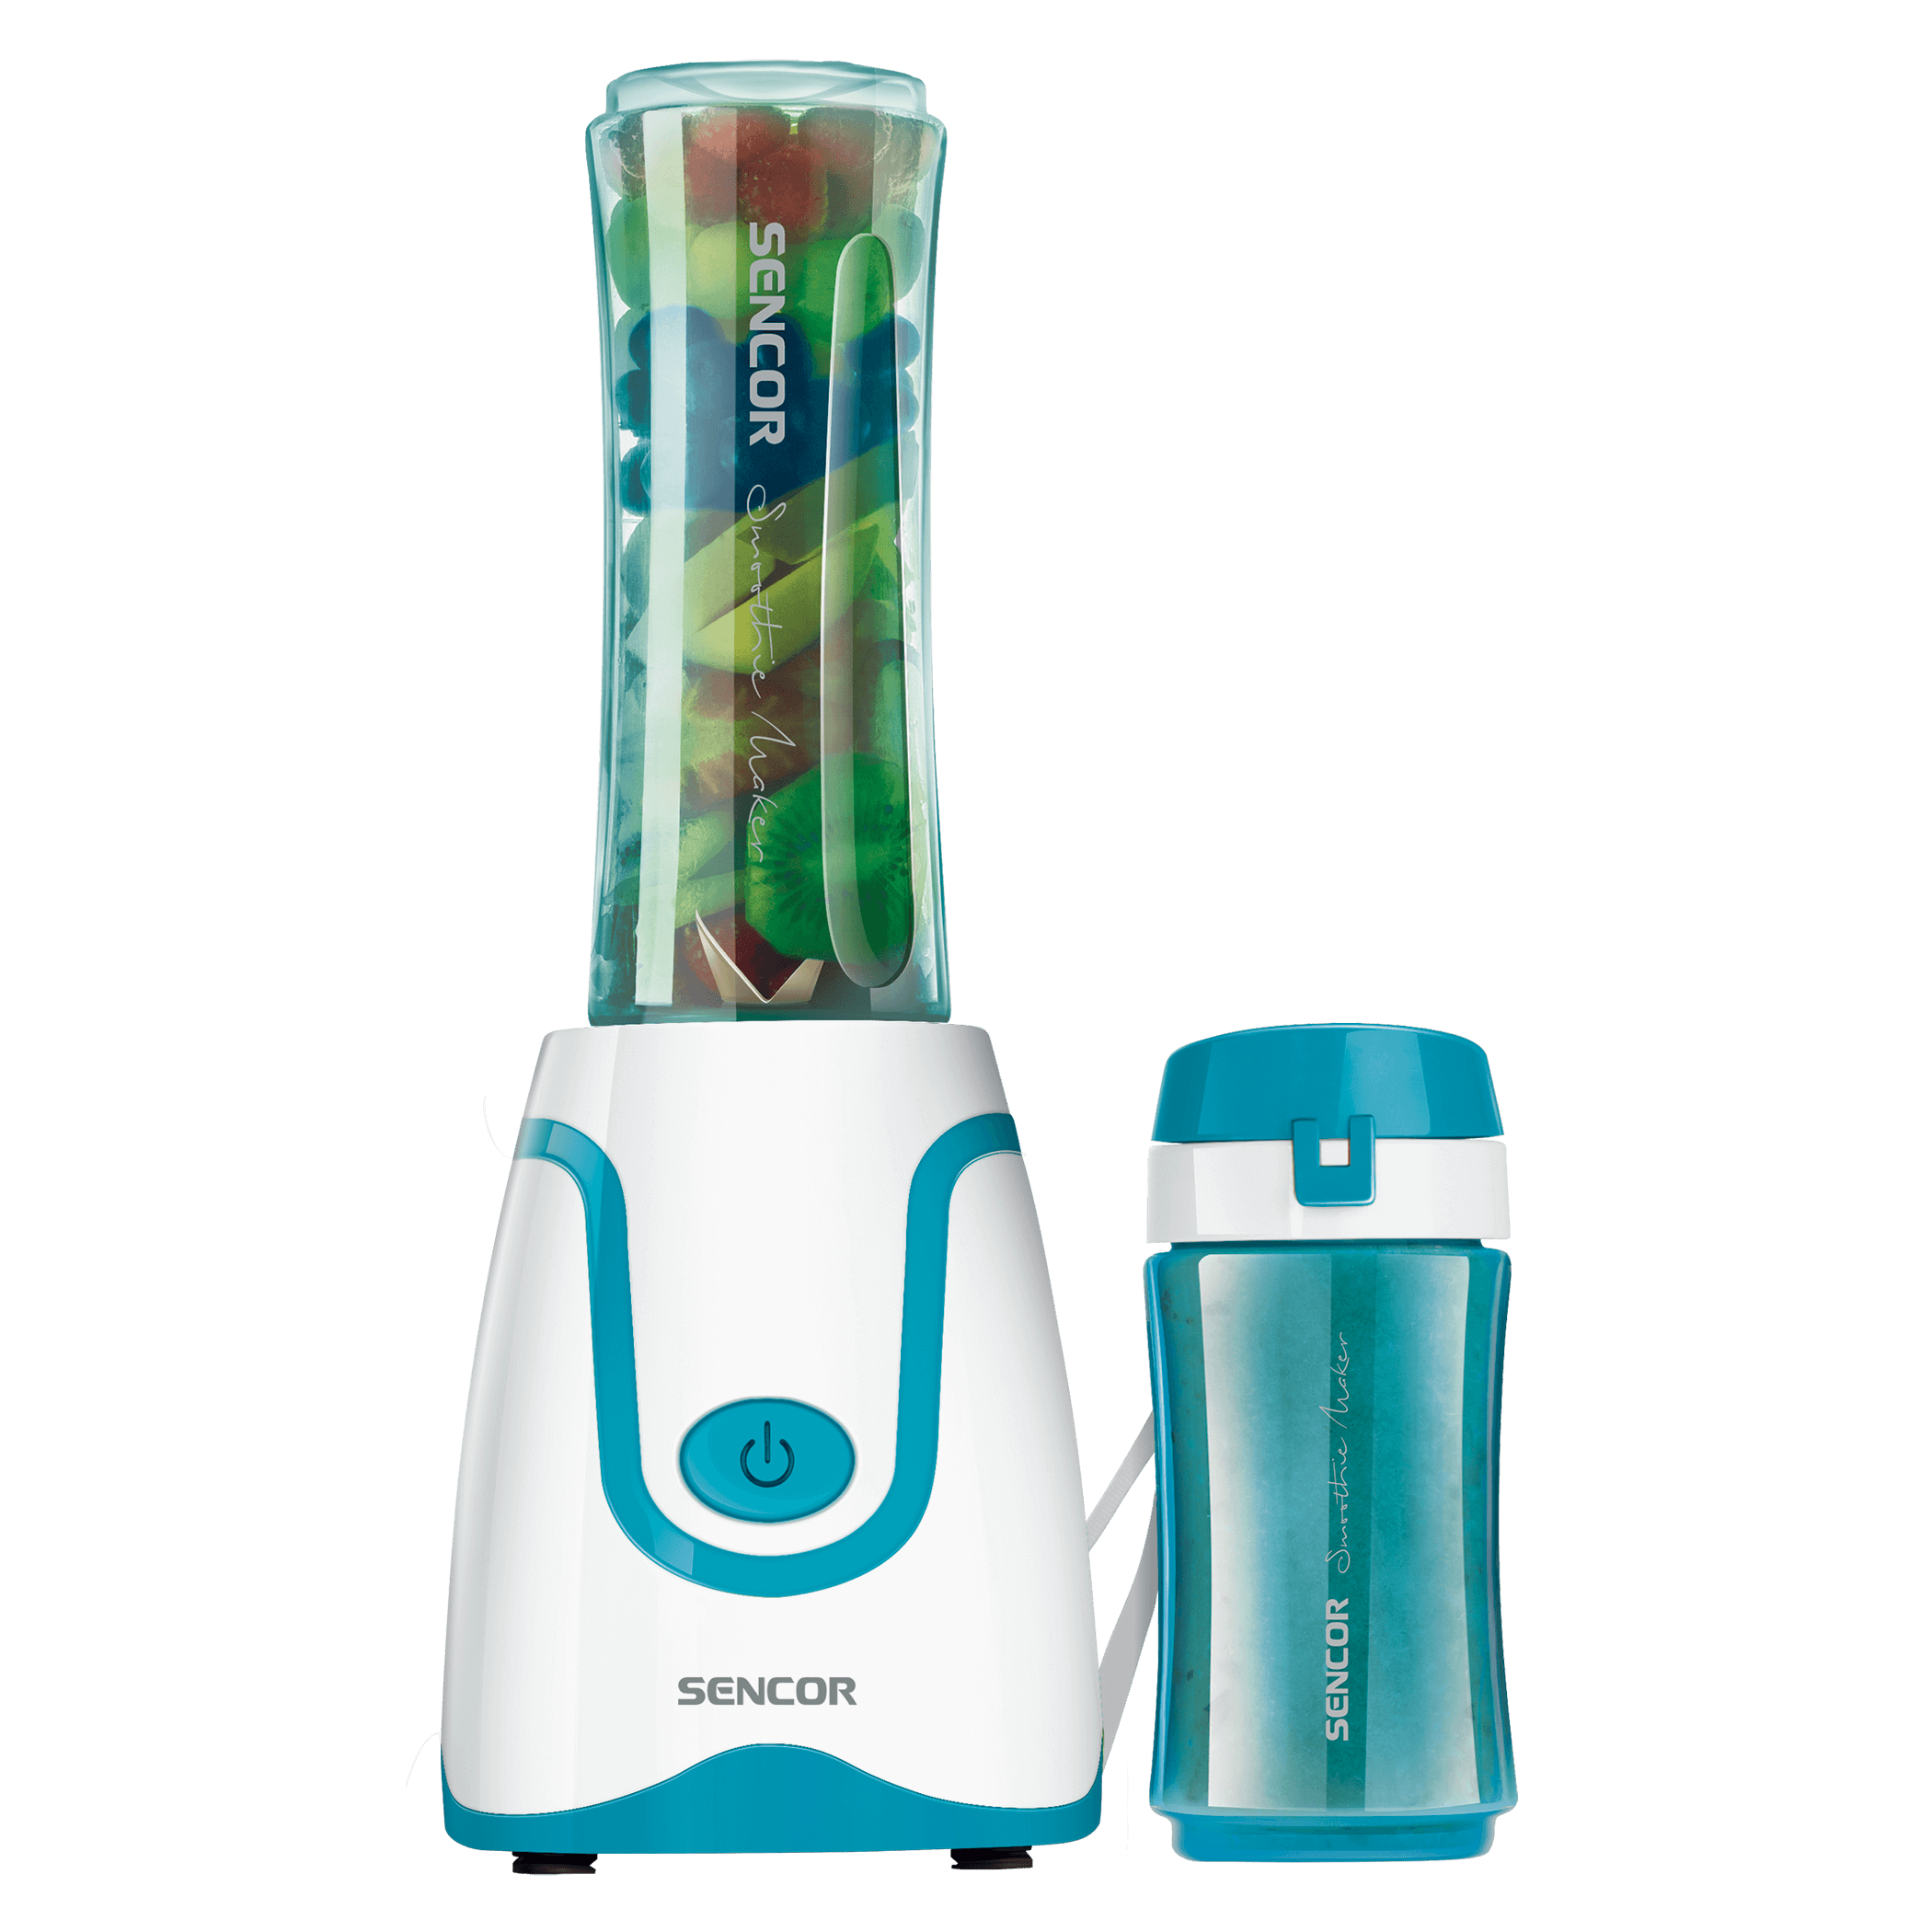 term/fokateg/SBL_2217TQ_Smoothie_maker_SENCOR.png